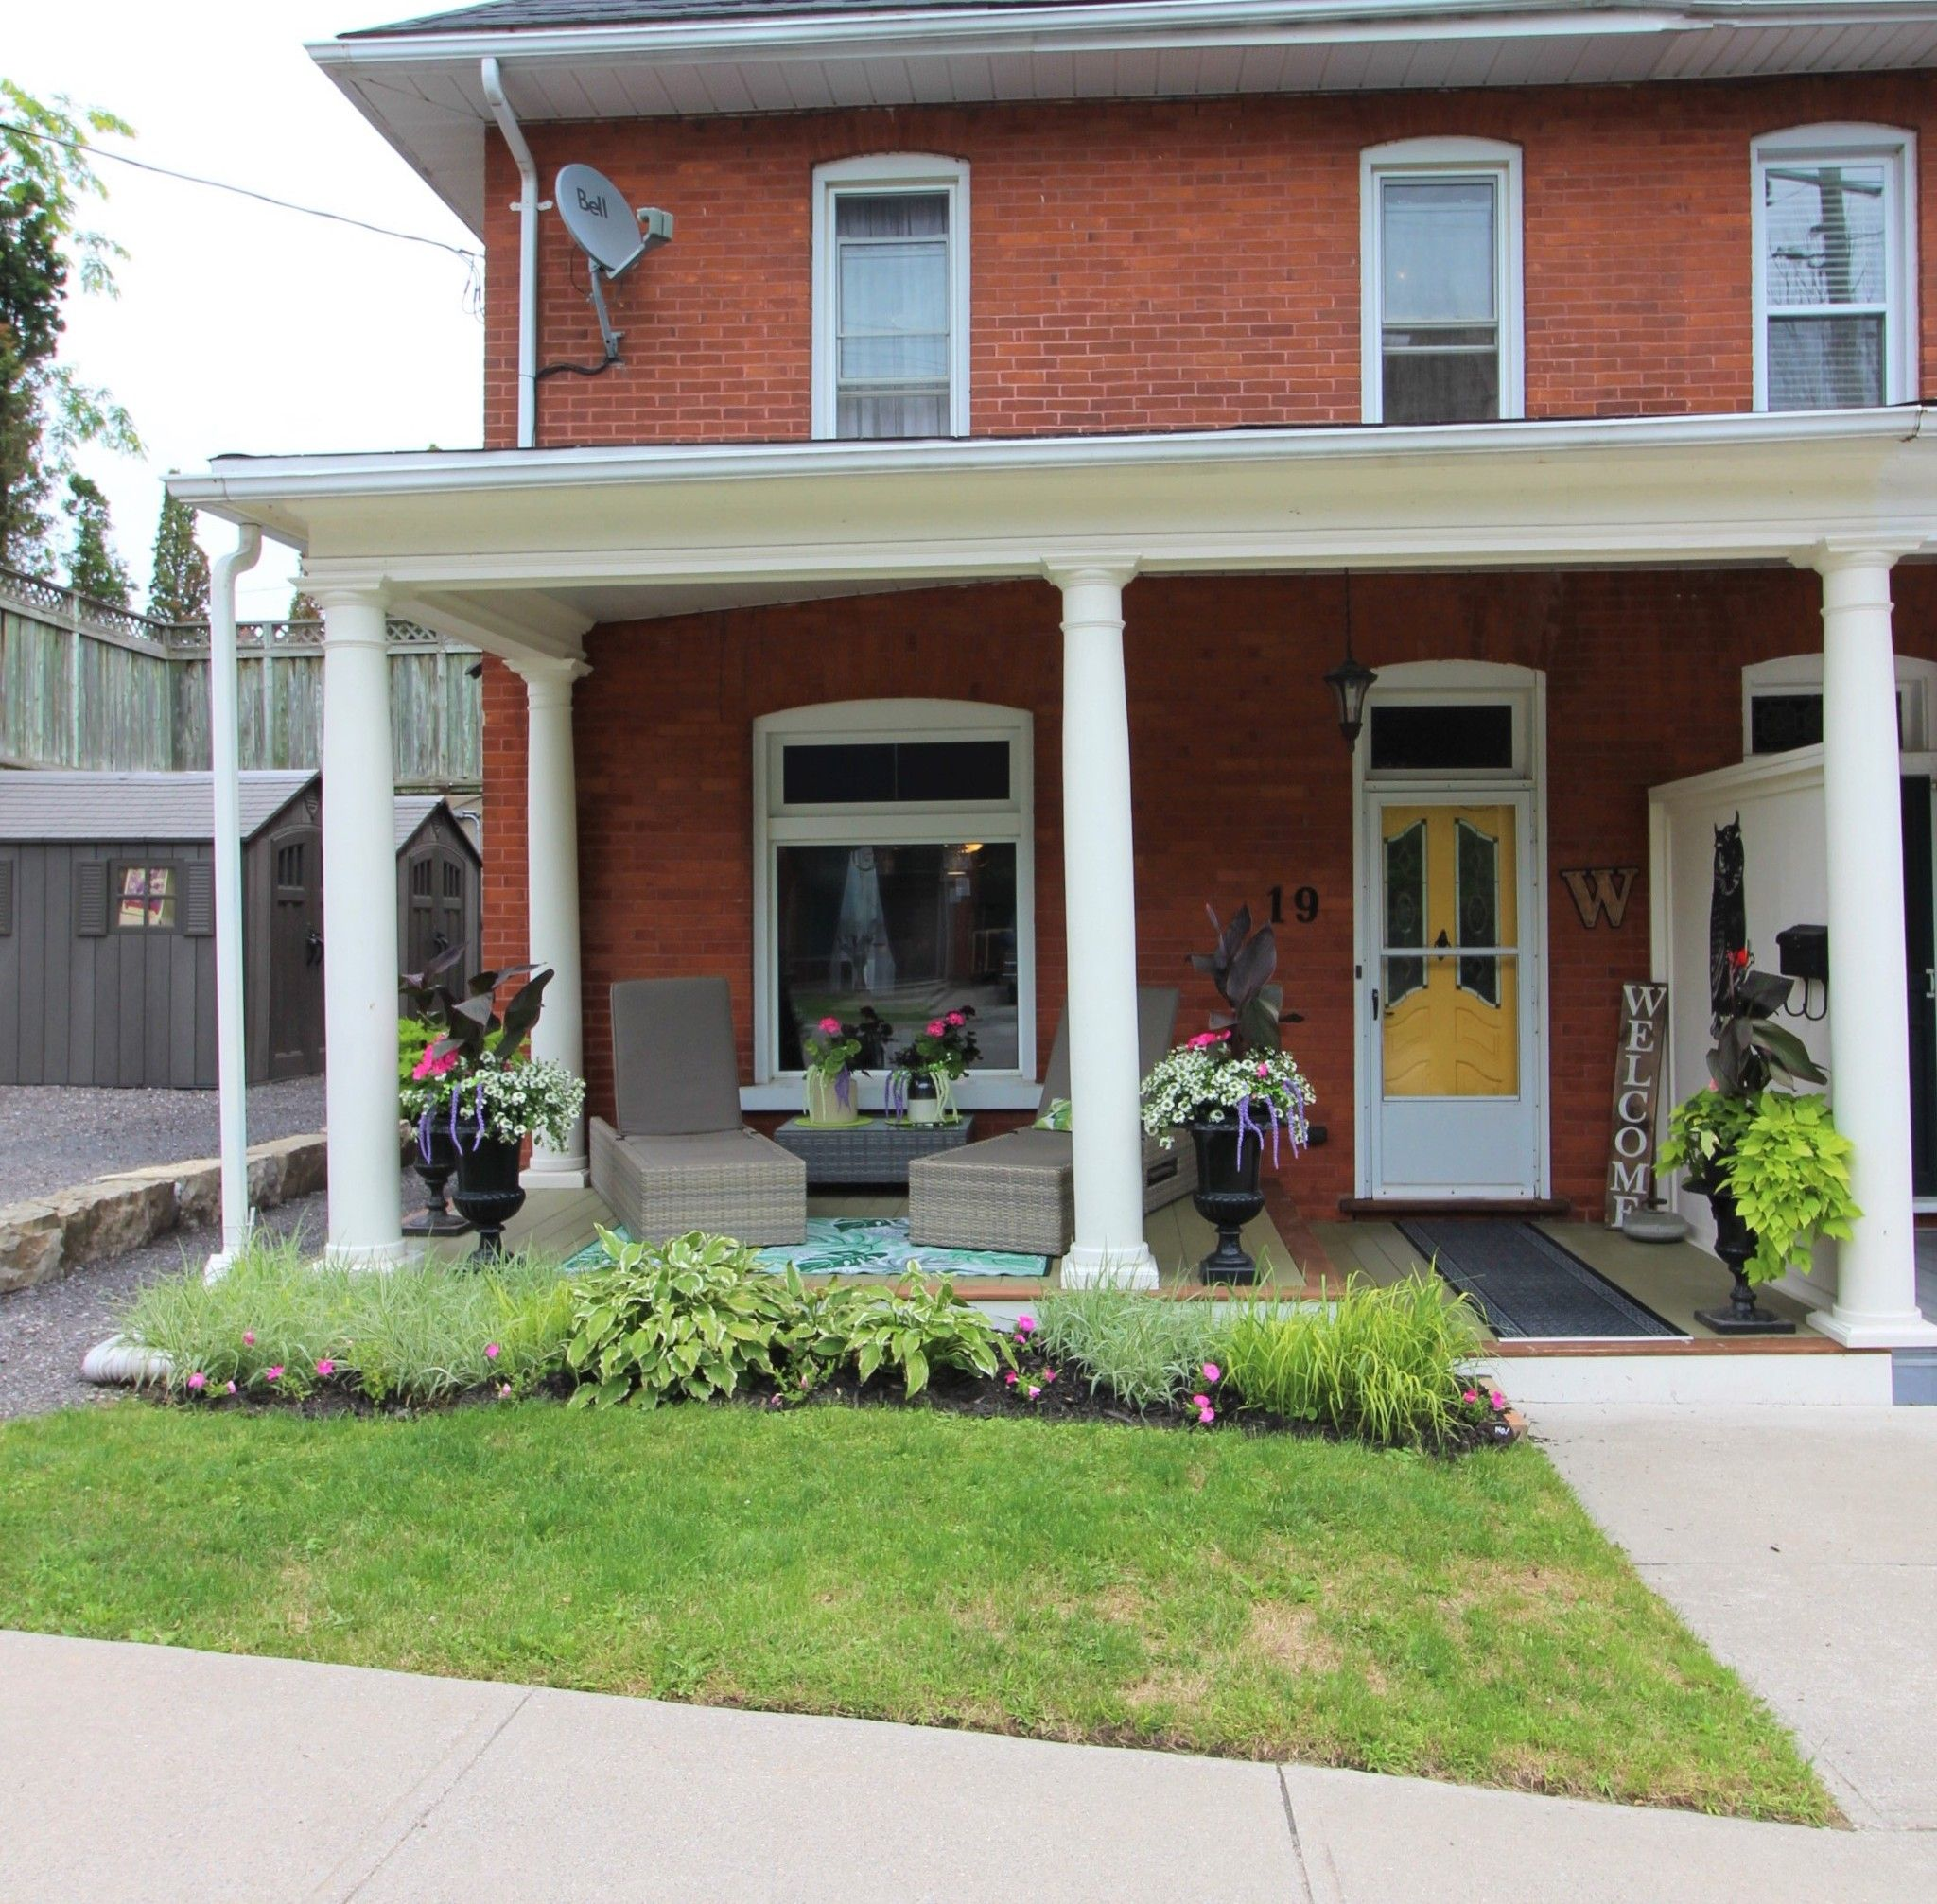 Main Photo: 19 Pine Street in Port Hope: Other for sale : MLS®# X5312163